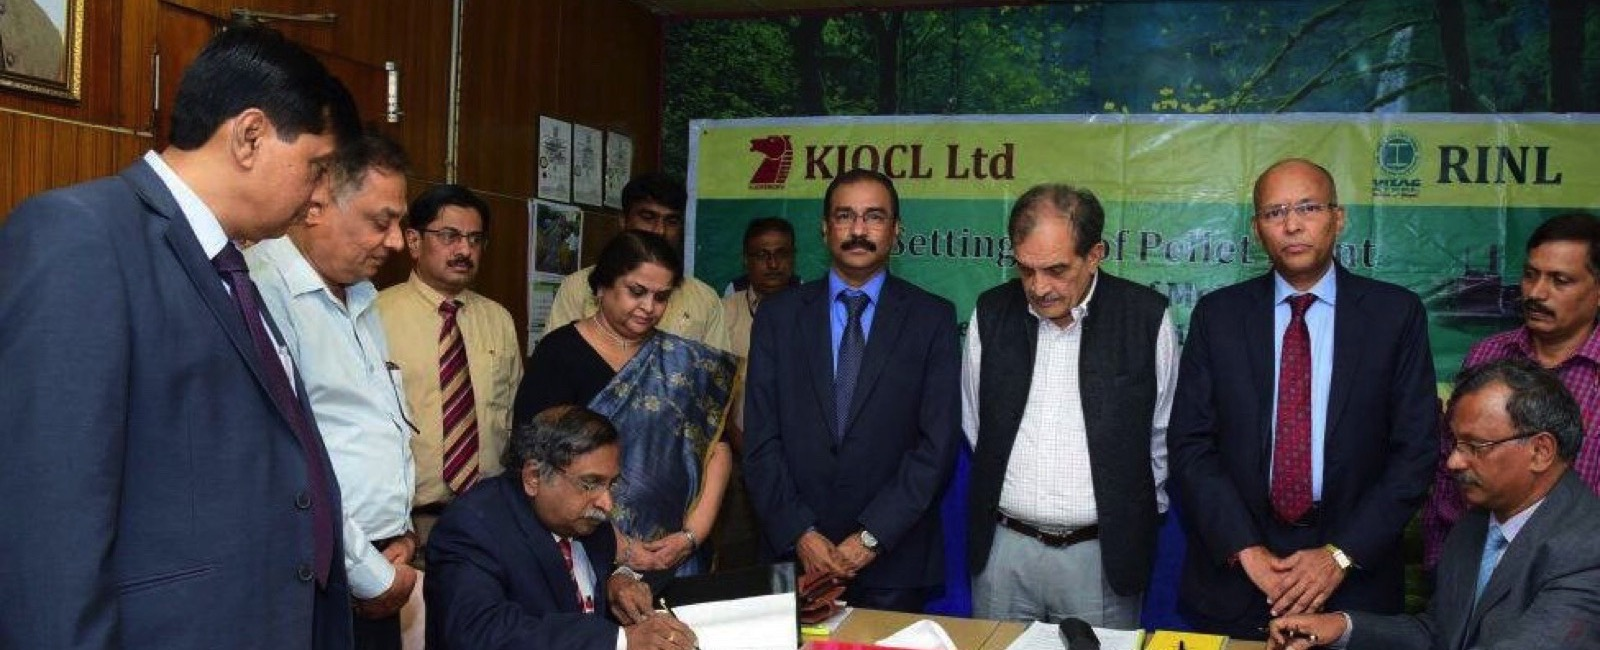 RINL and KIOCL sign MOU for Iron Ore Pellet Plant Joint Venture